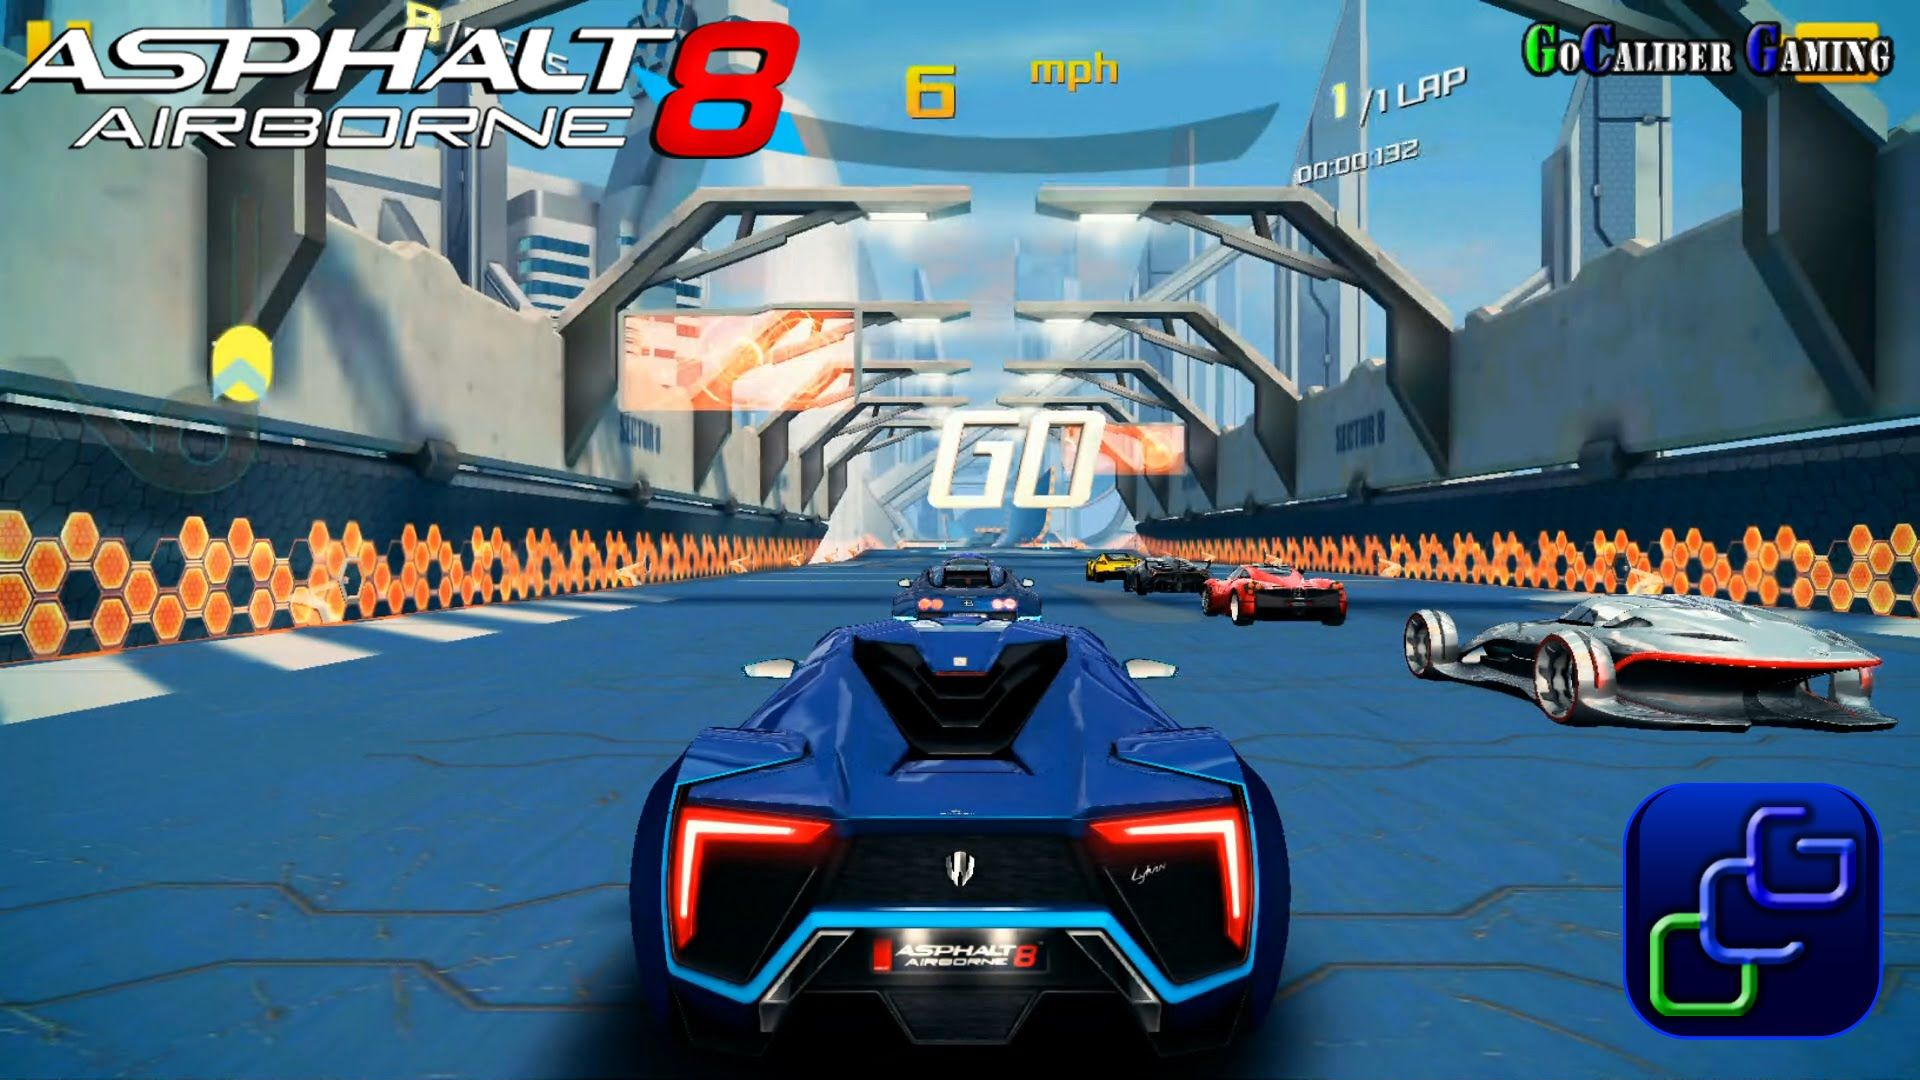 Pin by Duncan Smith on Asphalt 8 Asphalt 8 airborne, Car